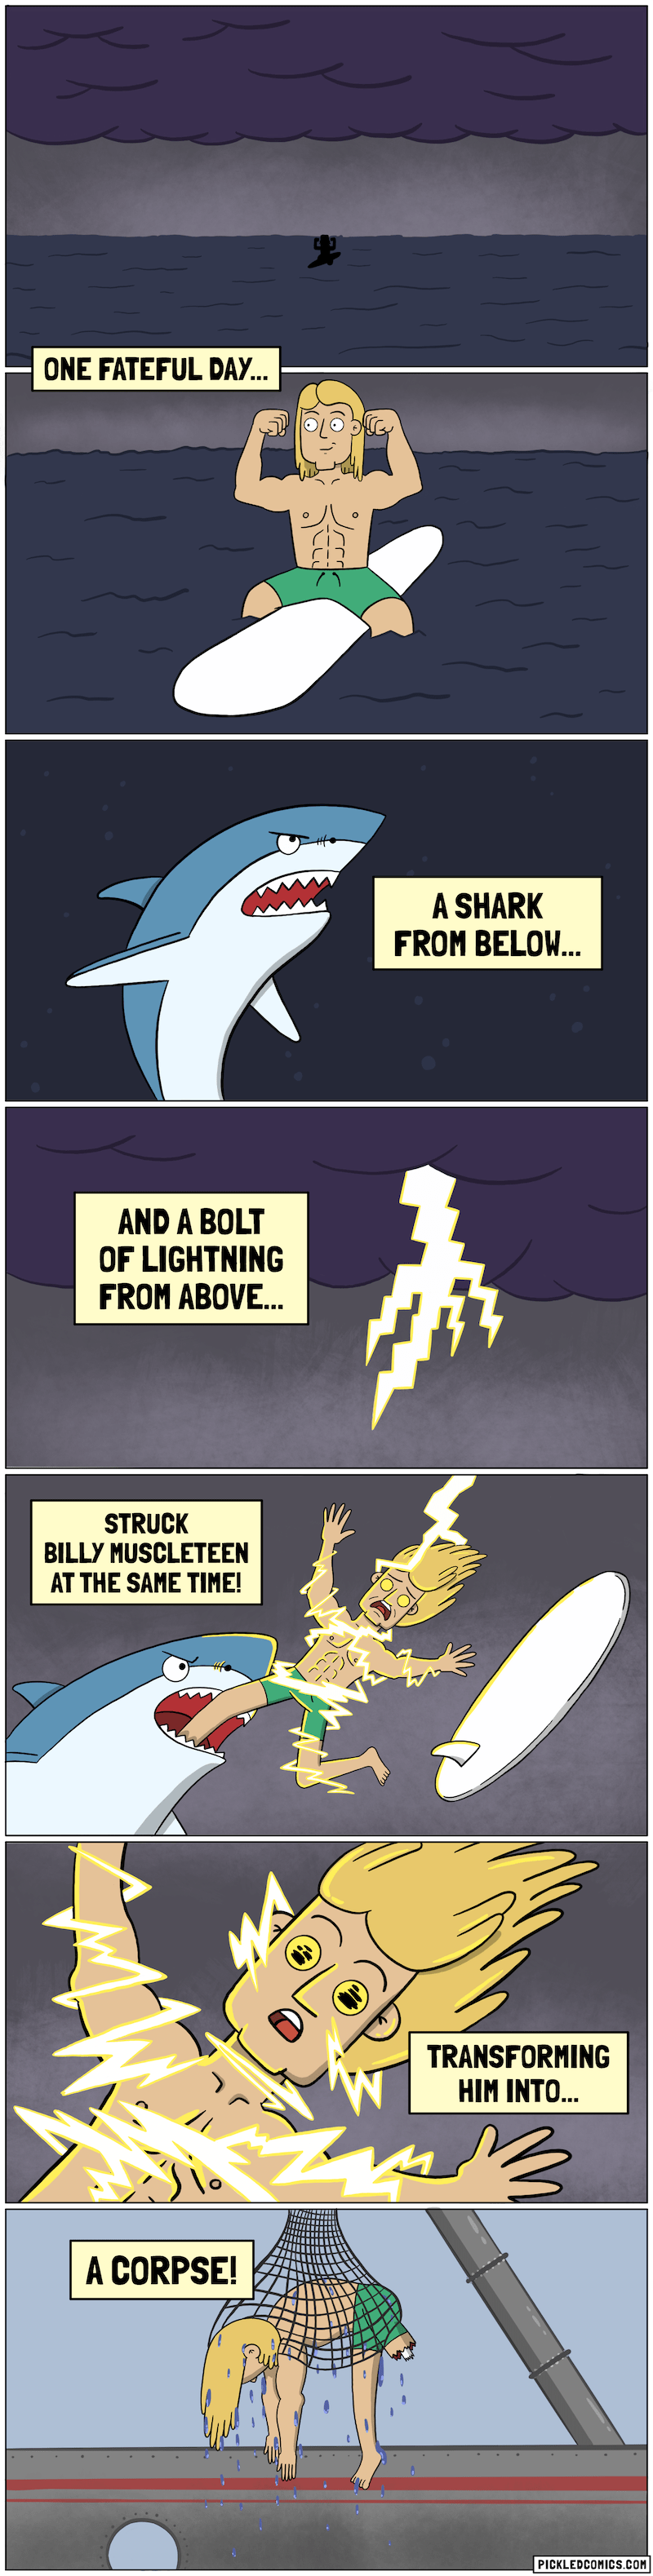 web-comics-when-the-lightning-shark-attack-doesnt-go-as-planned